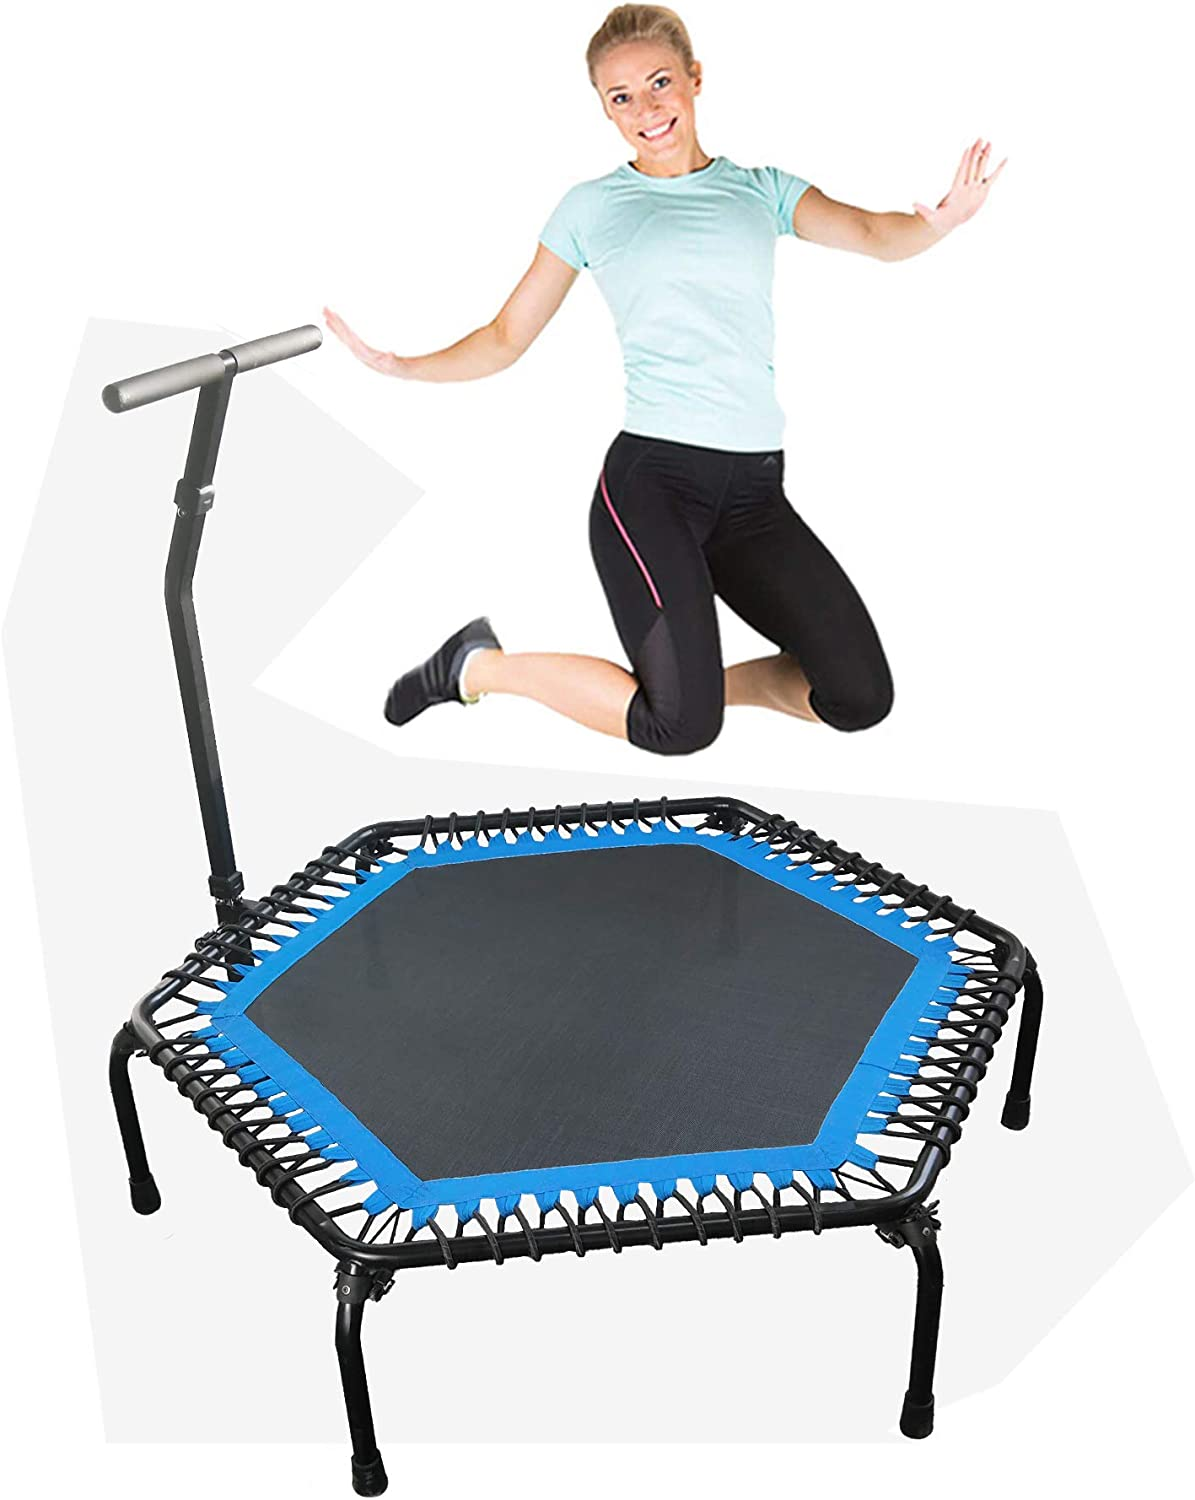 leikefitness Professional Gym Workout 50 Fitness Trampoline Cardio Trainer Exercise Rebounder with Adjustable Handle Bar, Max Load 330lbs